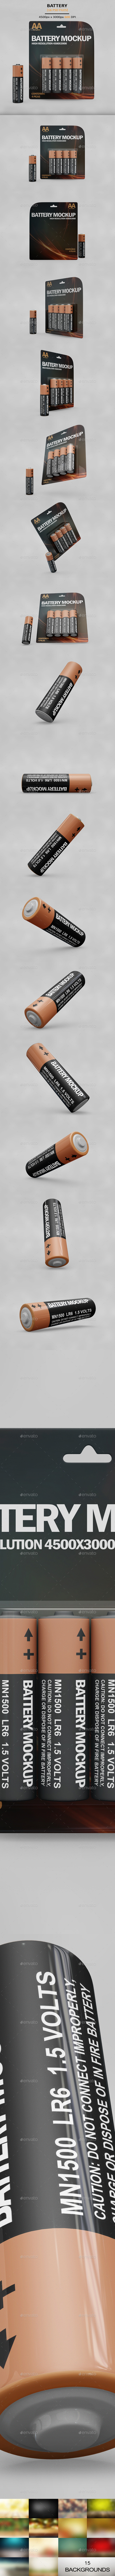 GraphicRiver Battery MockUp 20520860